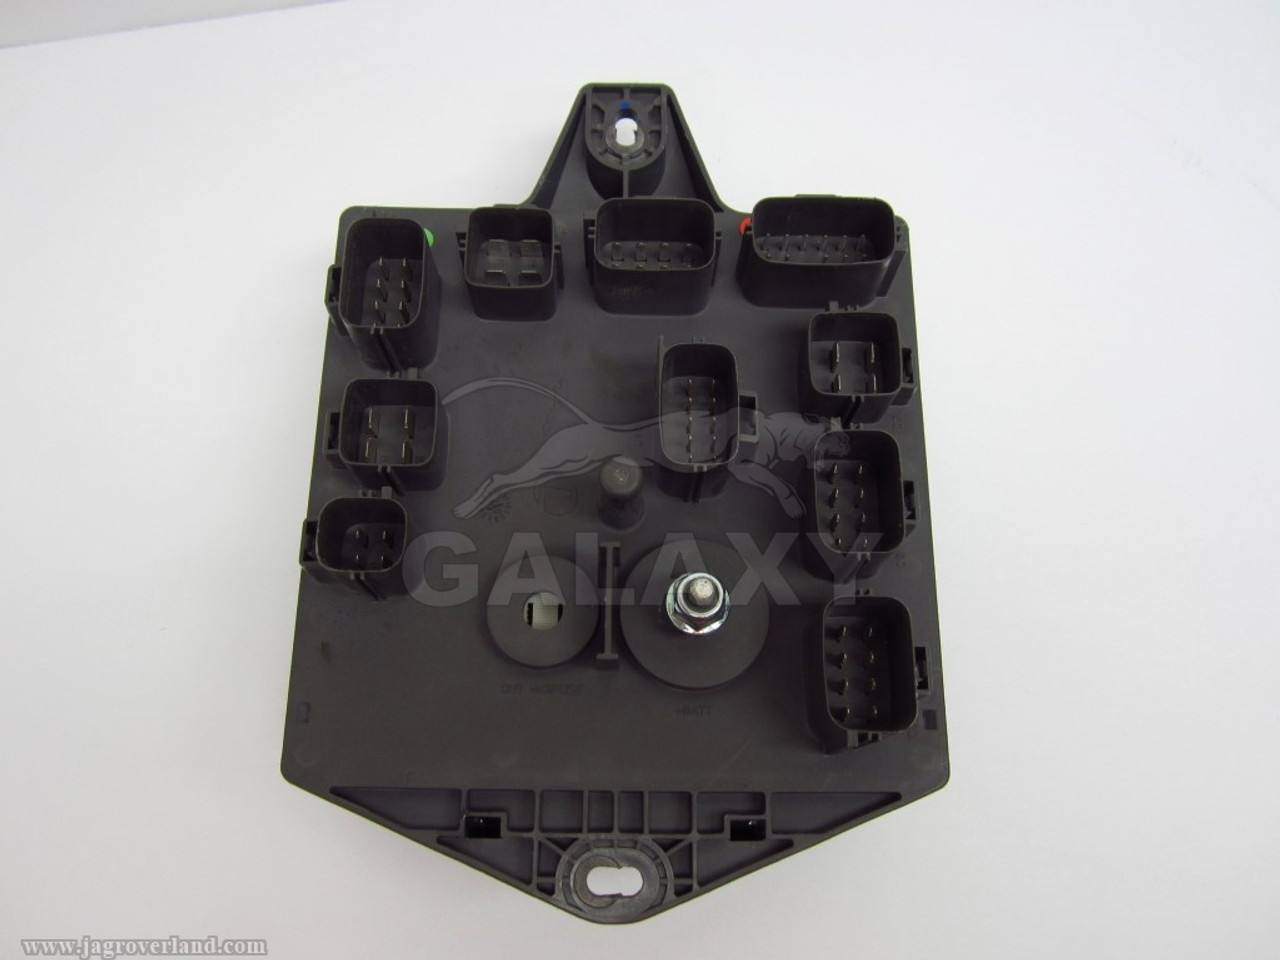 hight resolution of  08 09 xj8 xjr rear trunk mounted fuse and relay box oem c2c34455 7w93